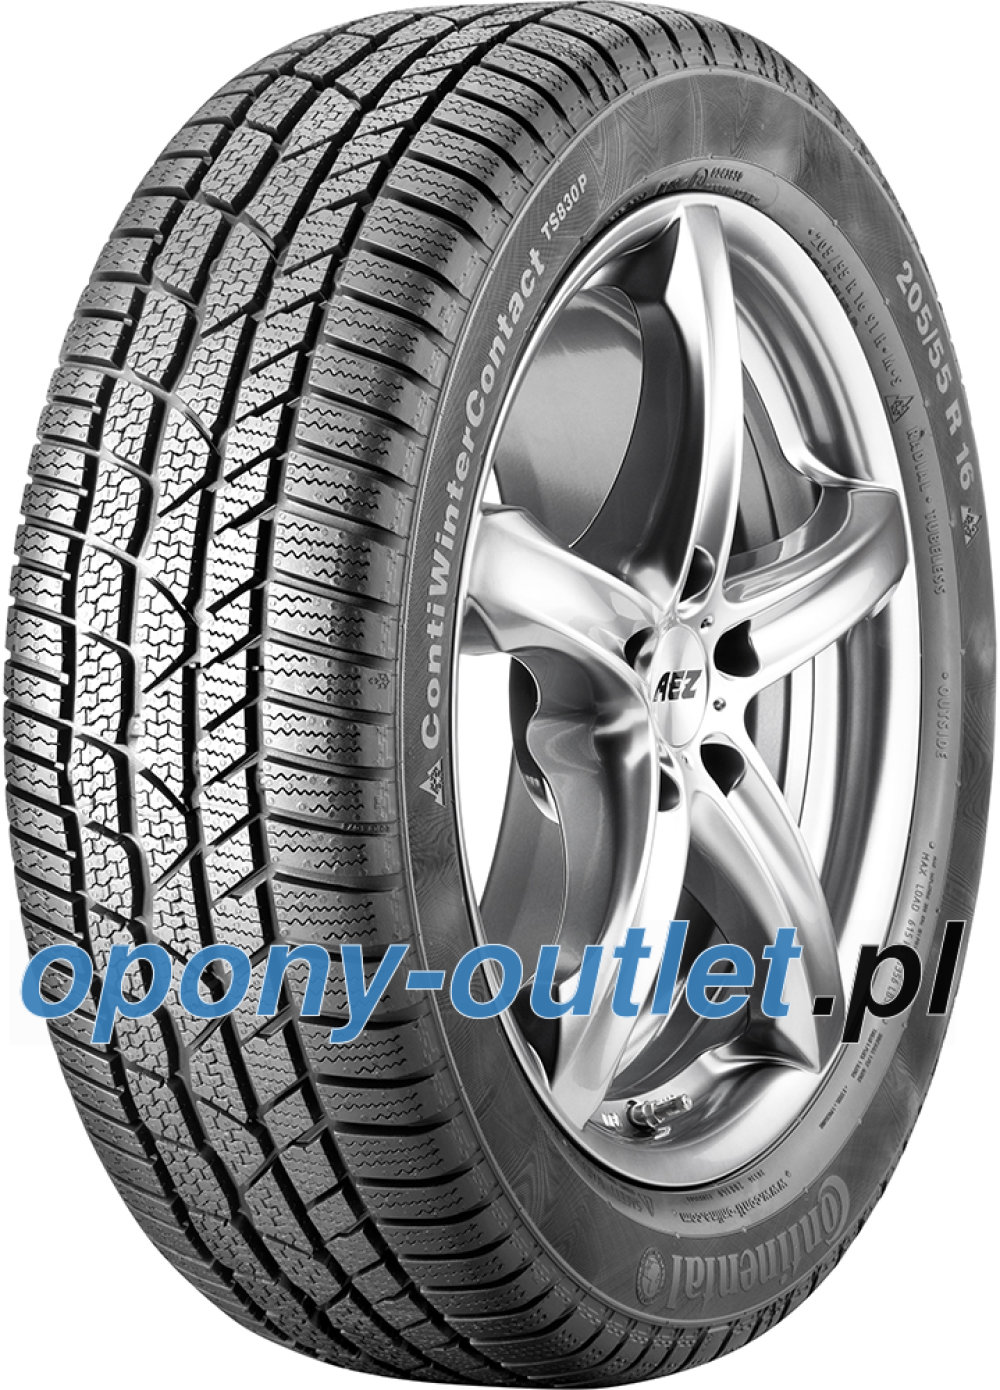 Continental Contiwintercontact Ts 830p 22550 R18 99h Xl Ao Www